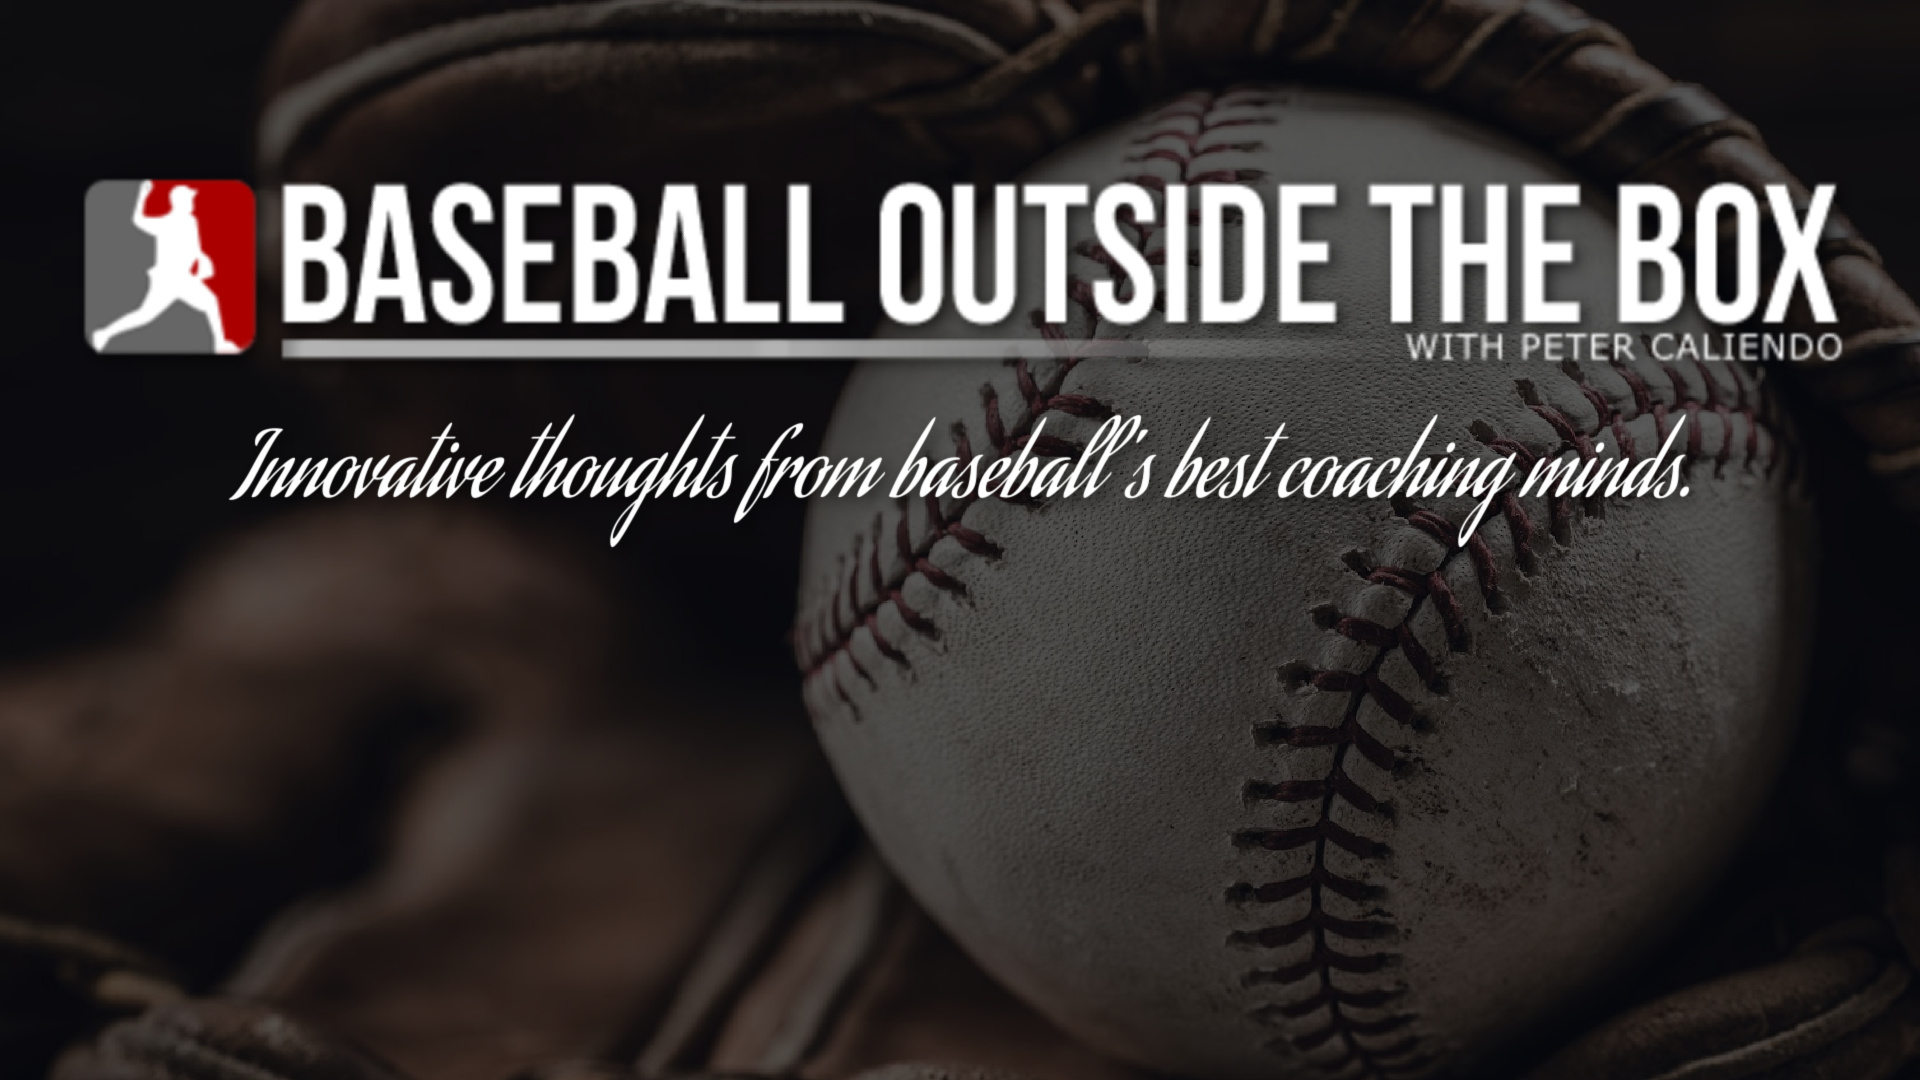 Baseball Outside the Box